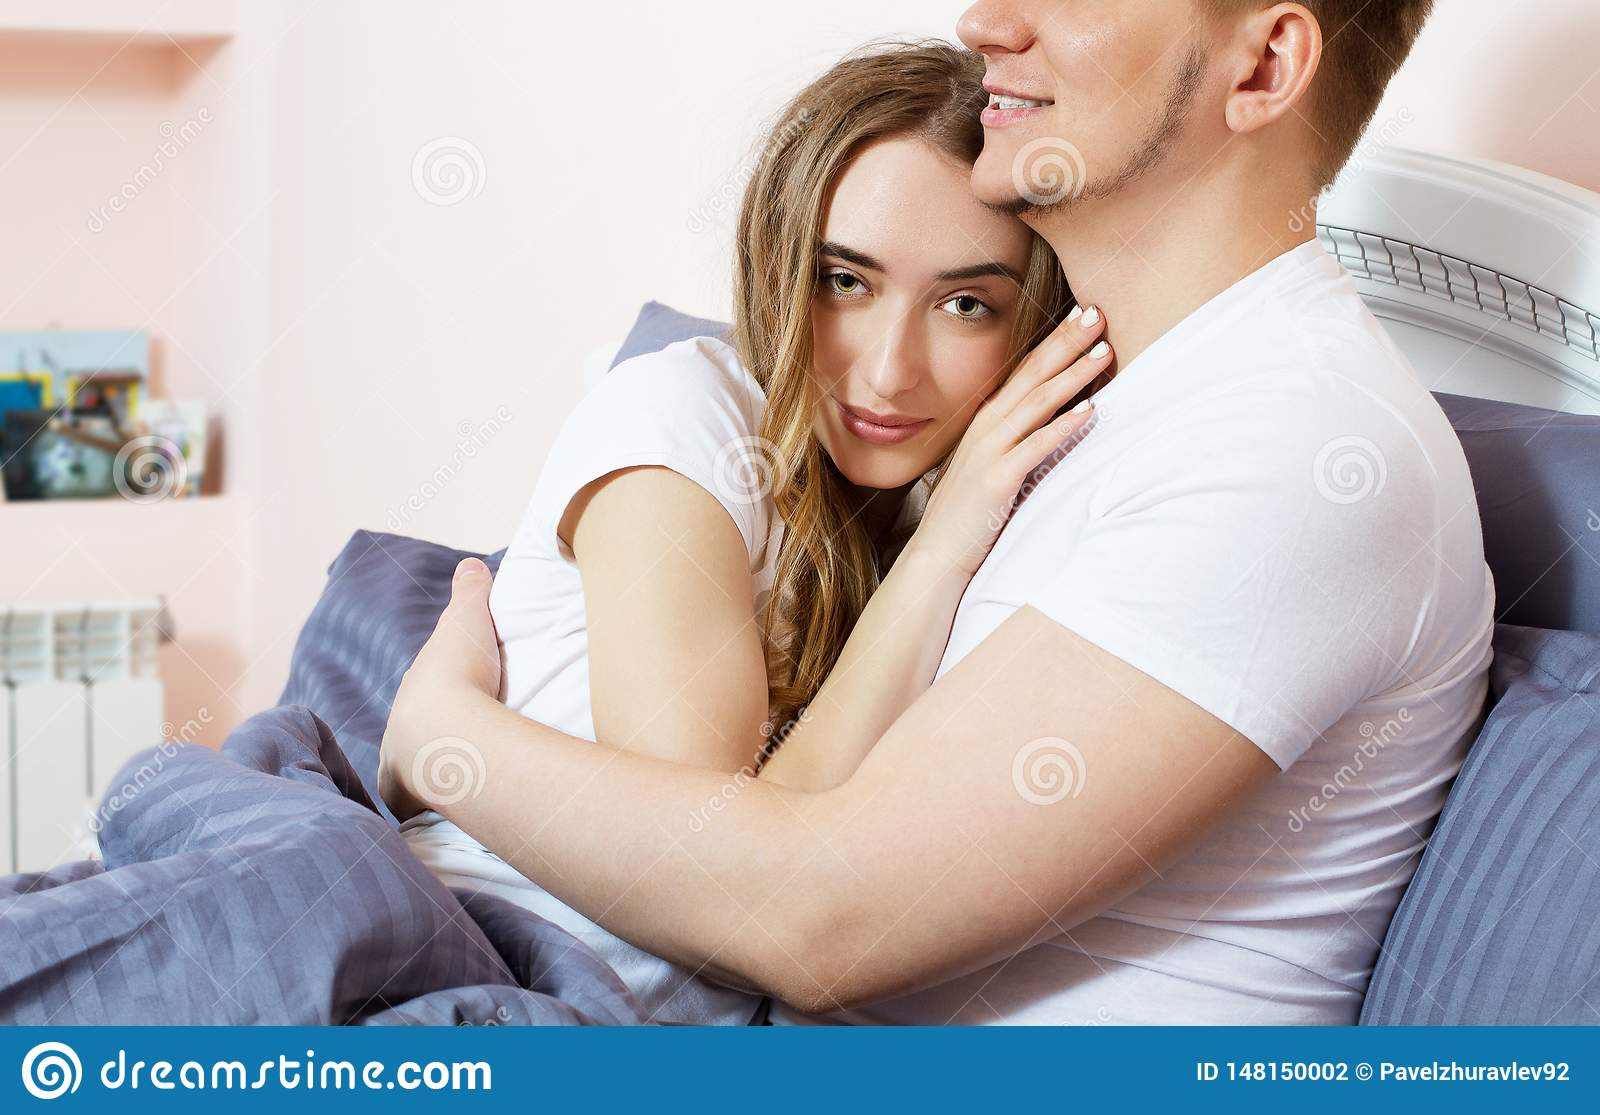 4 085 Lovely Couple Bed Photos Free Royalty Stock From Dreamstime